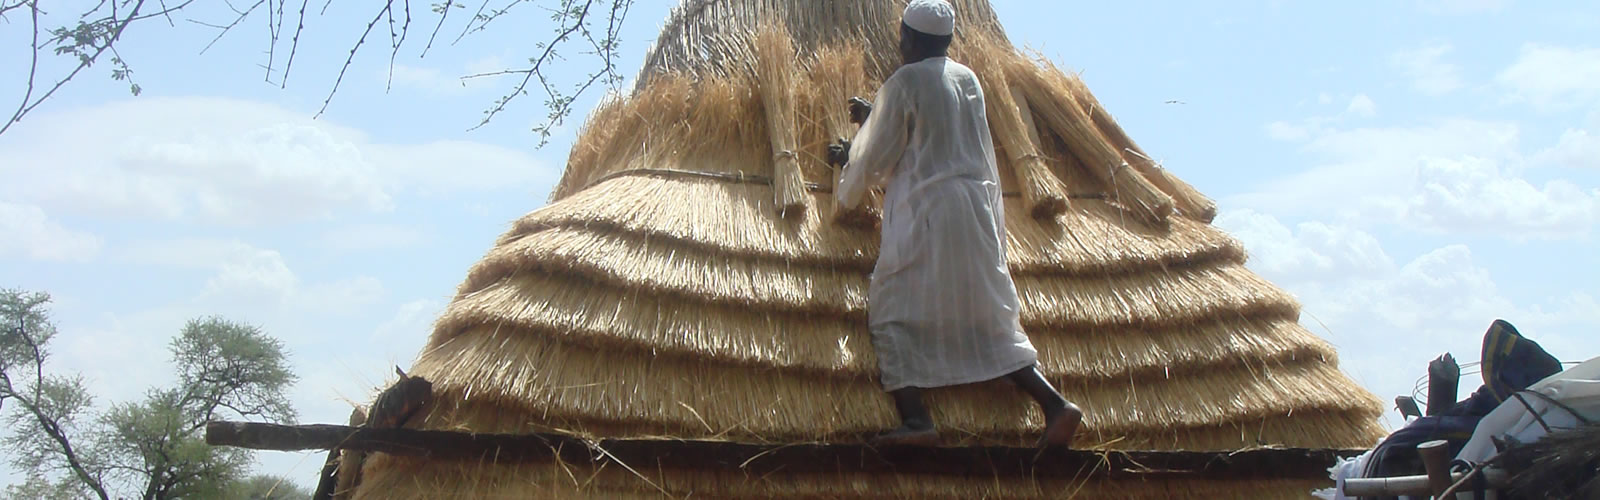 Thatching a roof in an African village